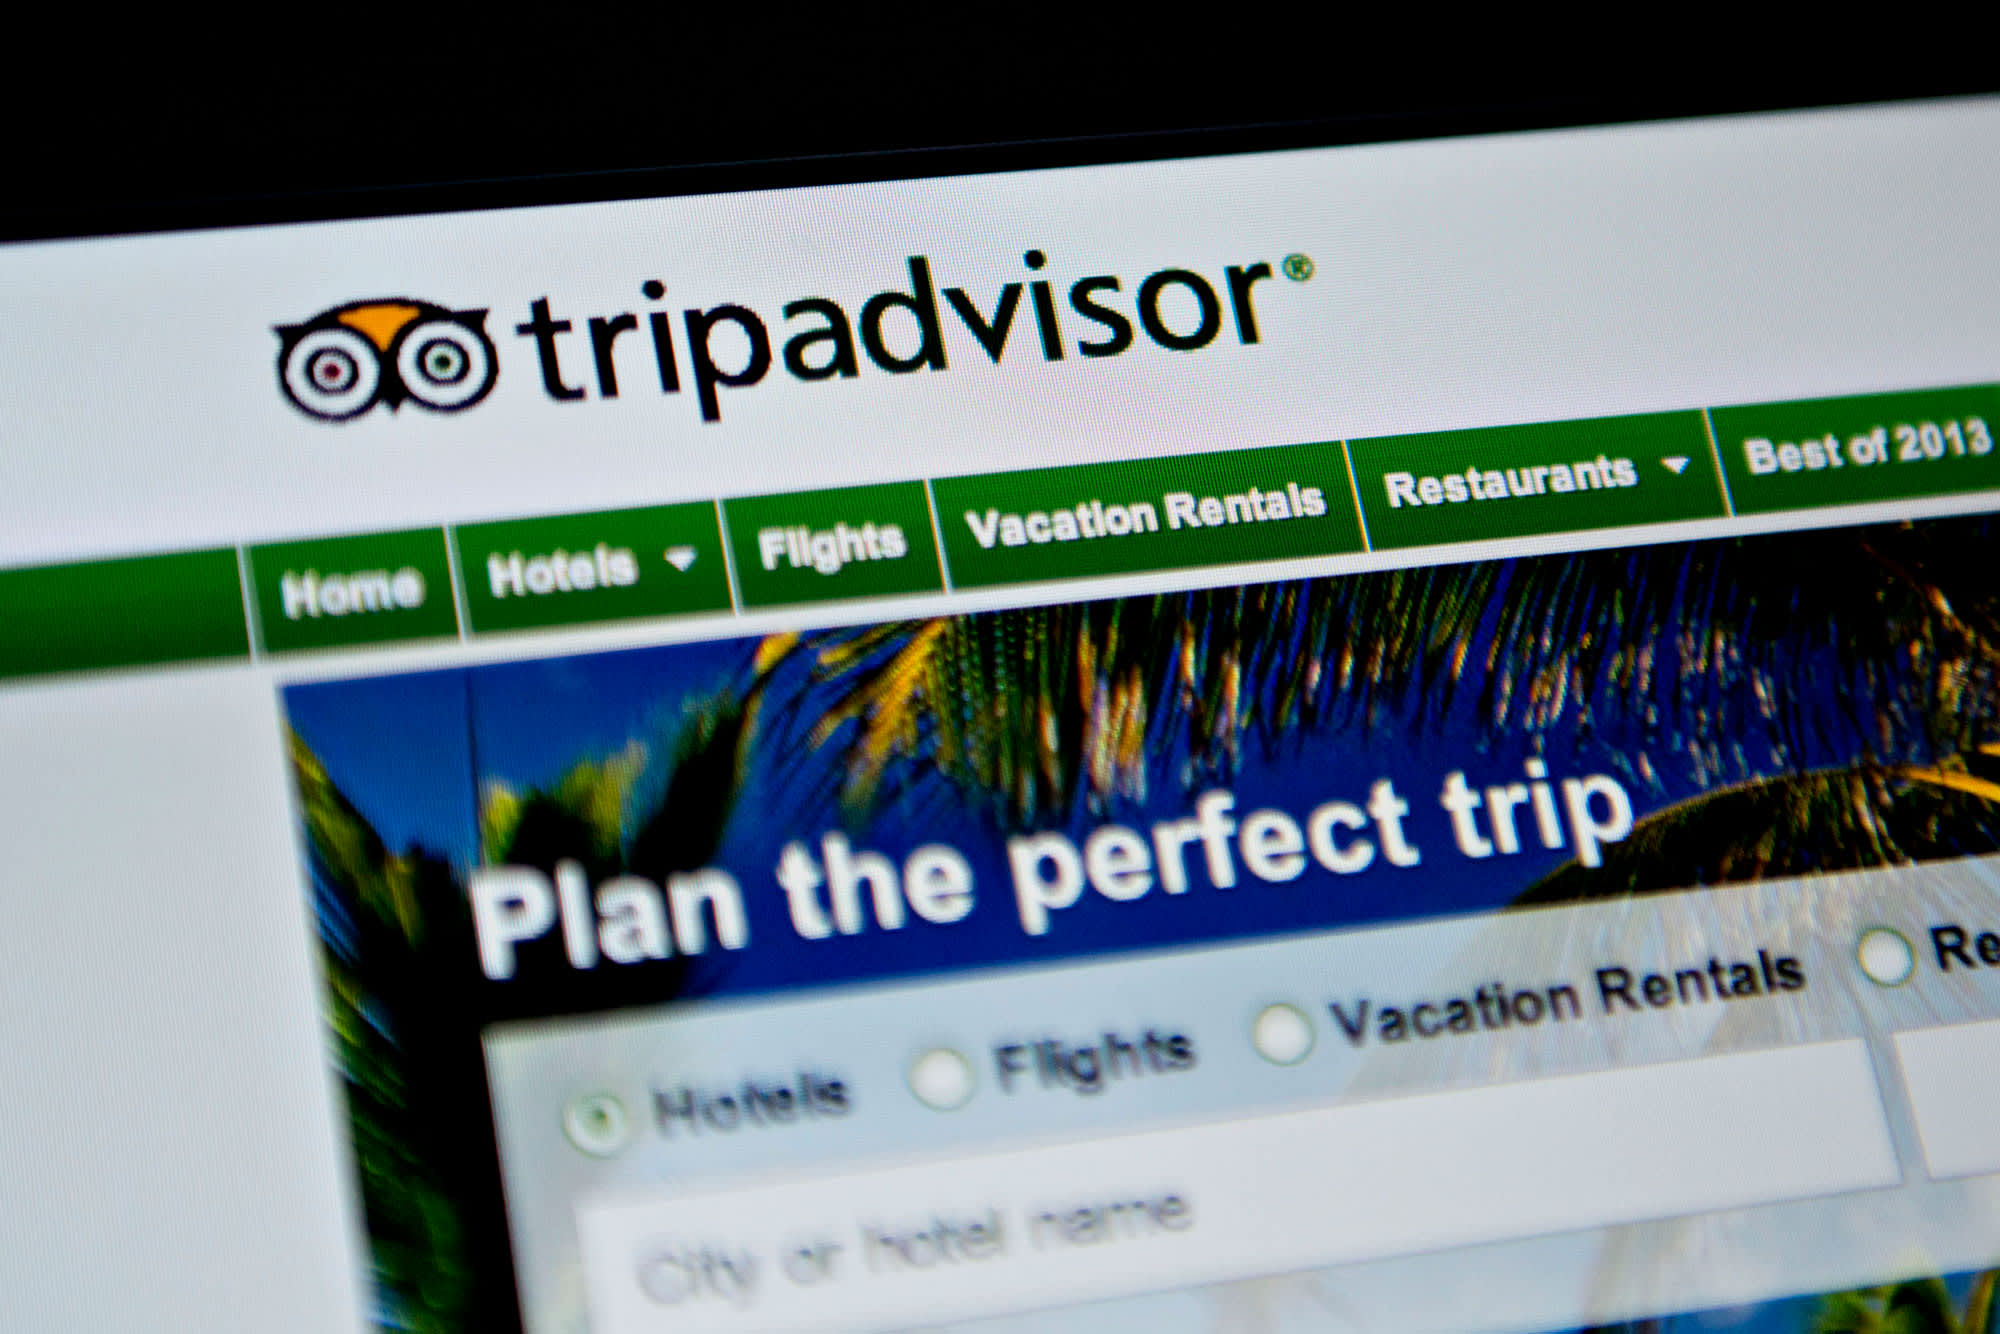 TripAdvisor set to cut 200 jobs, source confirms